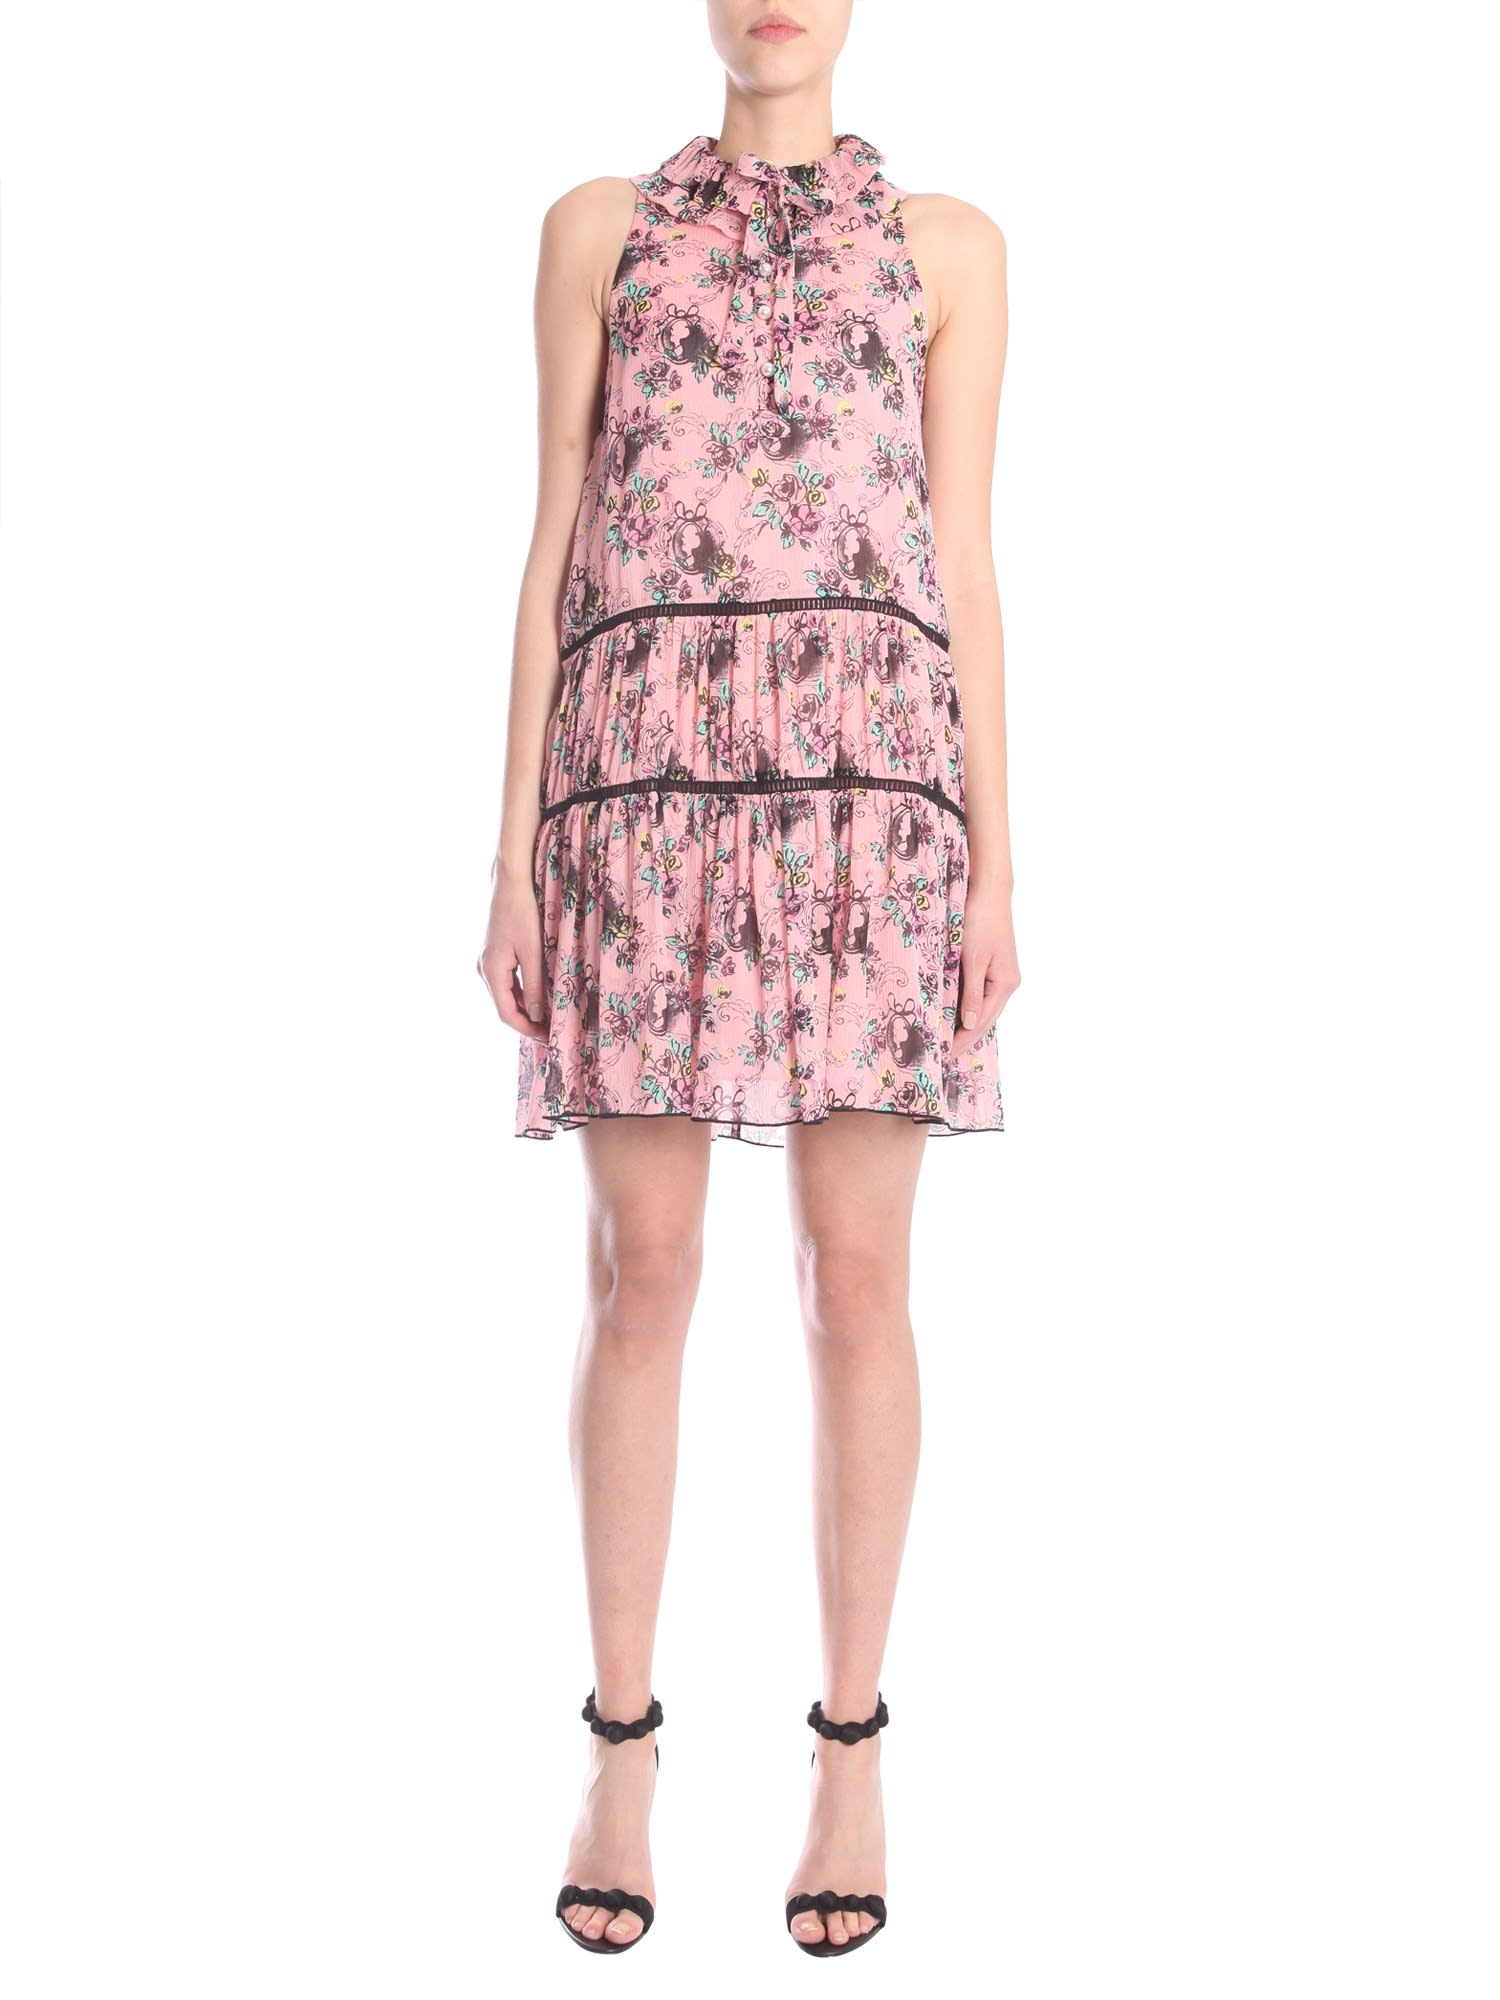 Boutique Moschino Sleeveless Dress